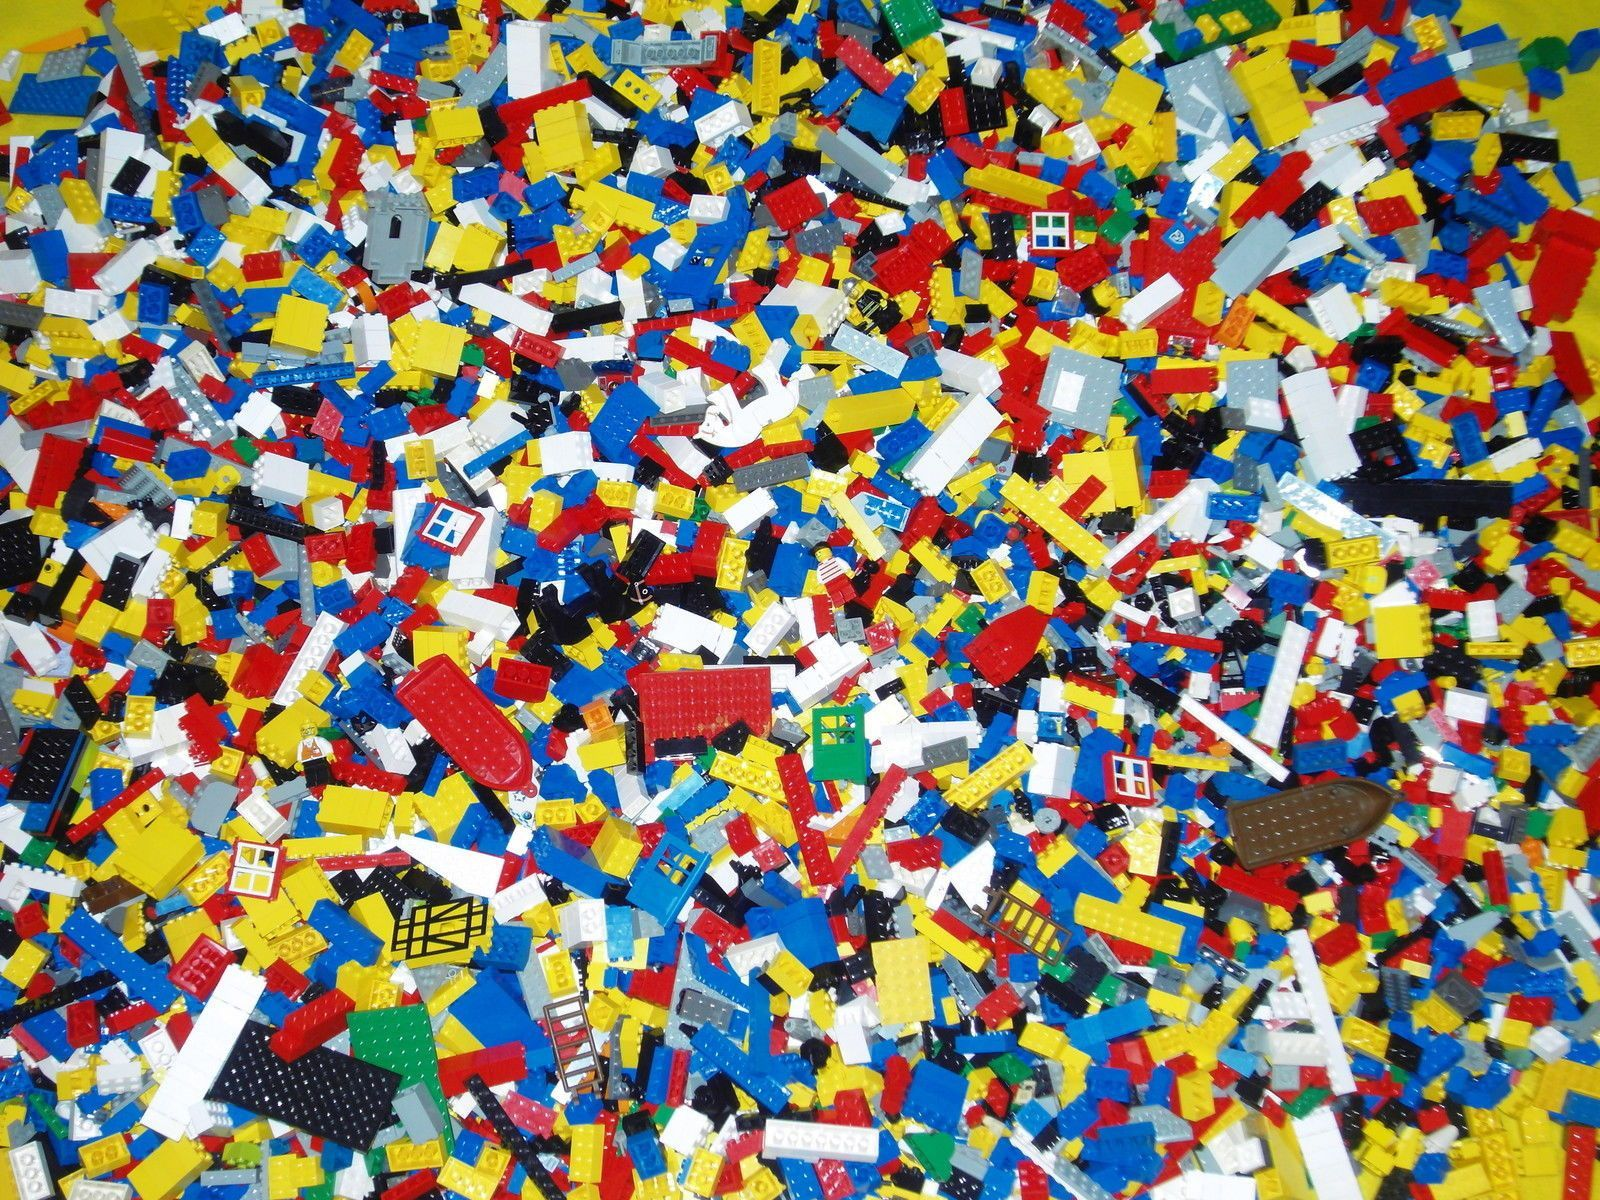 LEGO DUPLO Bricks 1kg of Random Assorted Parts /& Pieces All genuine Duplo